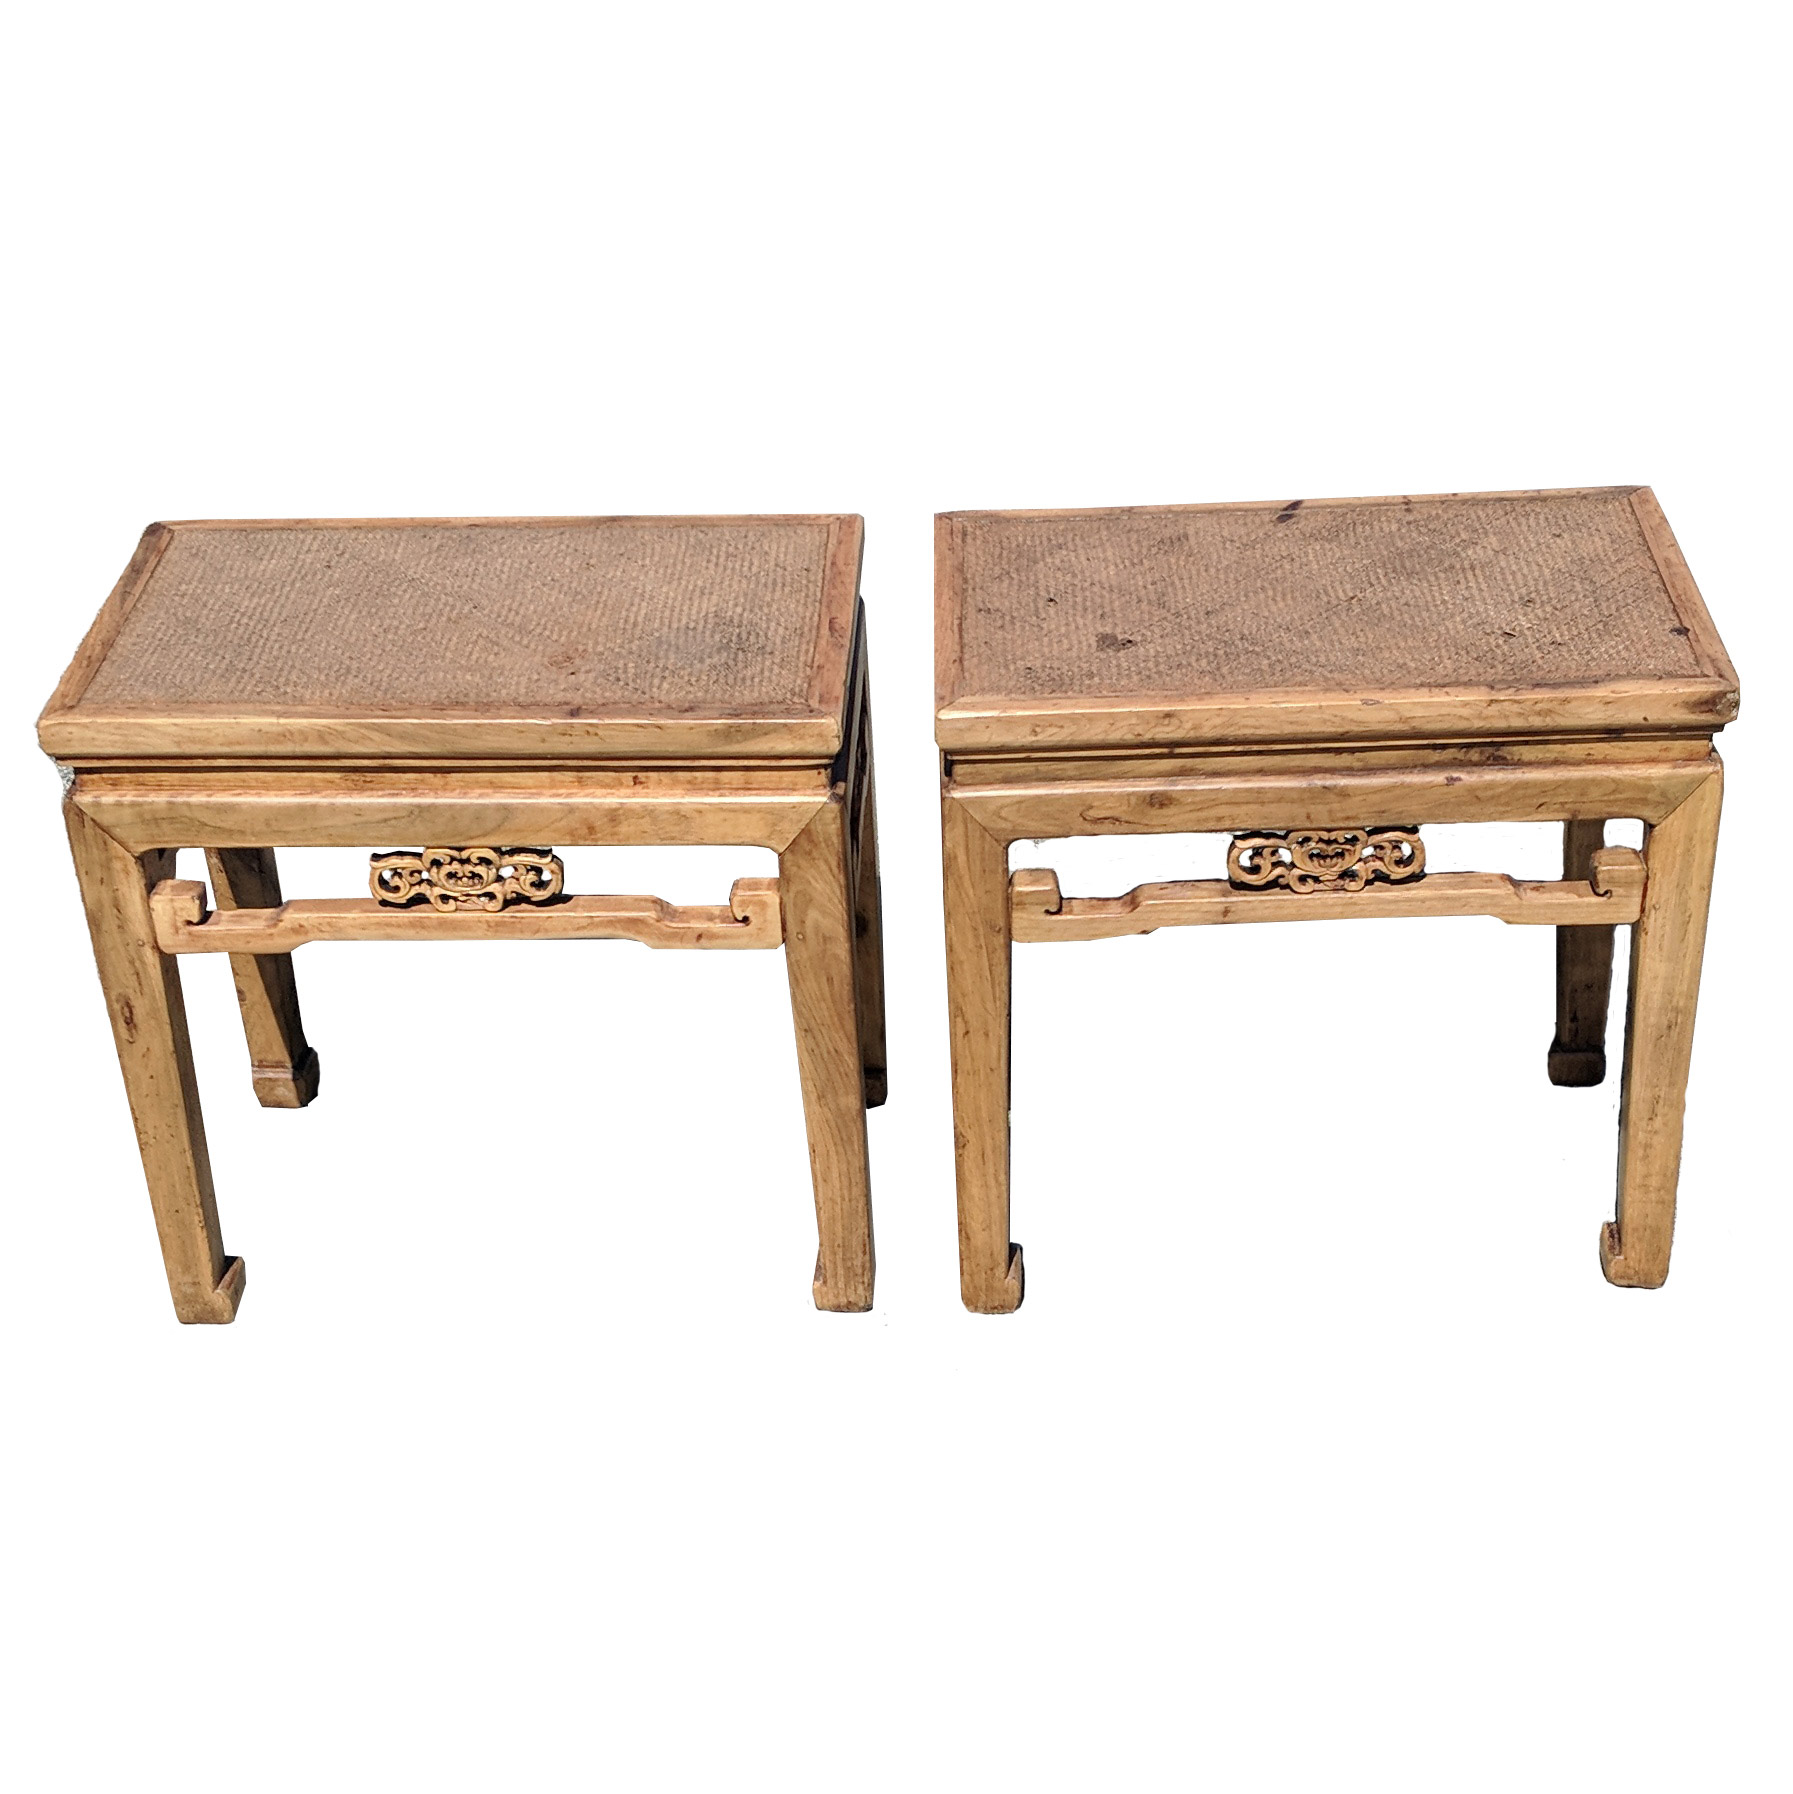 Prime Shens Gallery Chinese Antiques Bench Stool Bay Area Dailytribune Chair Design For Home Dailytribuneorg